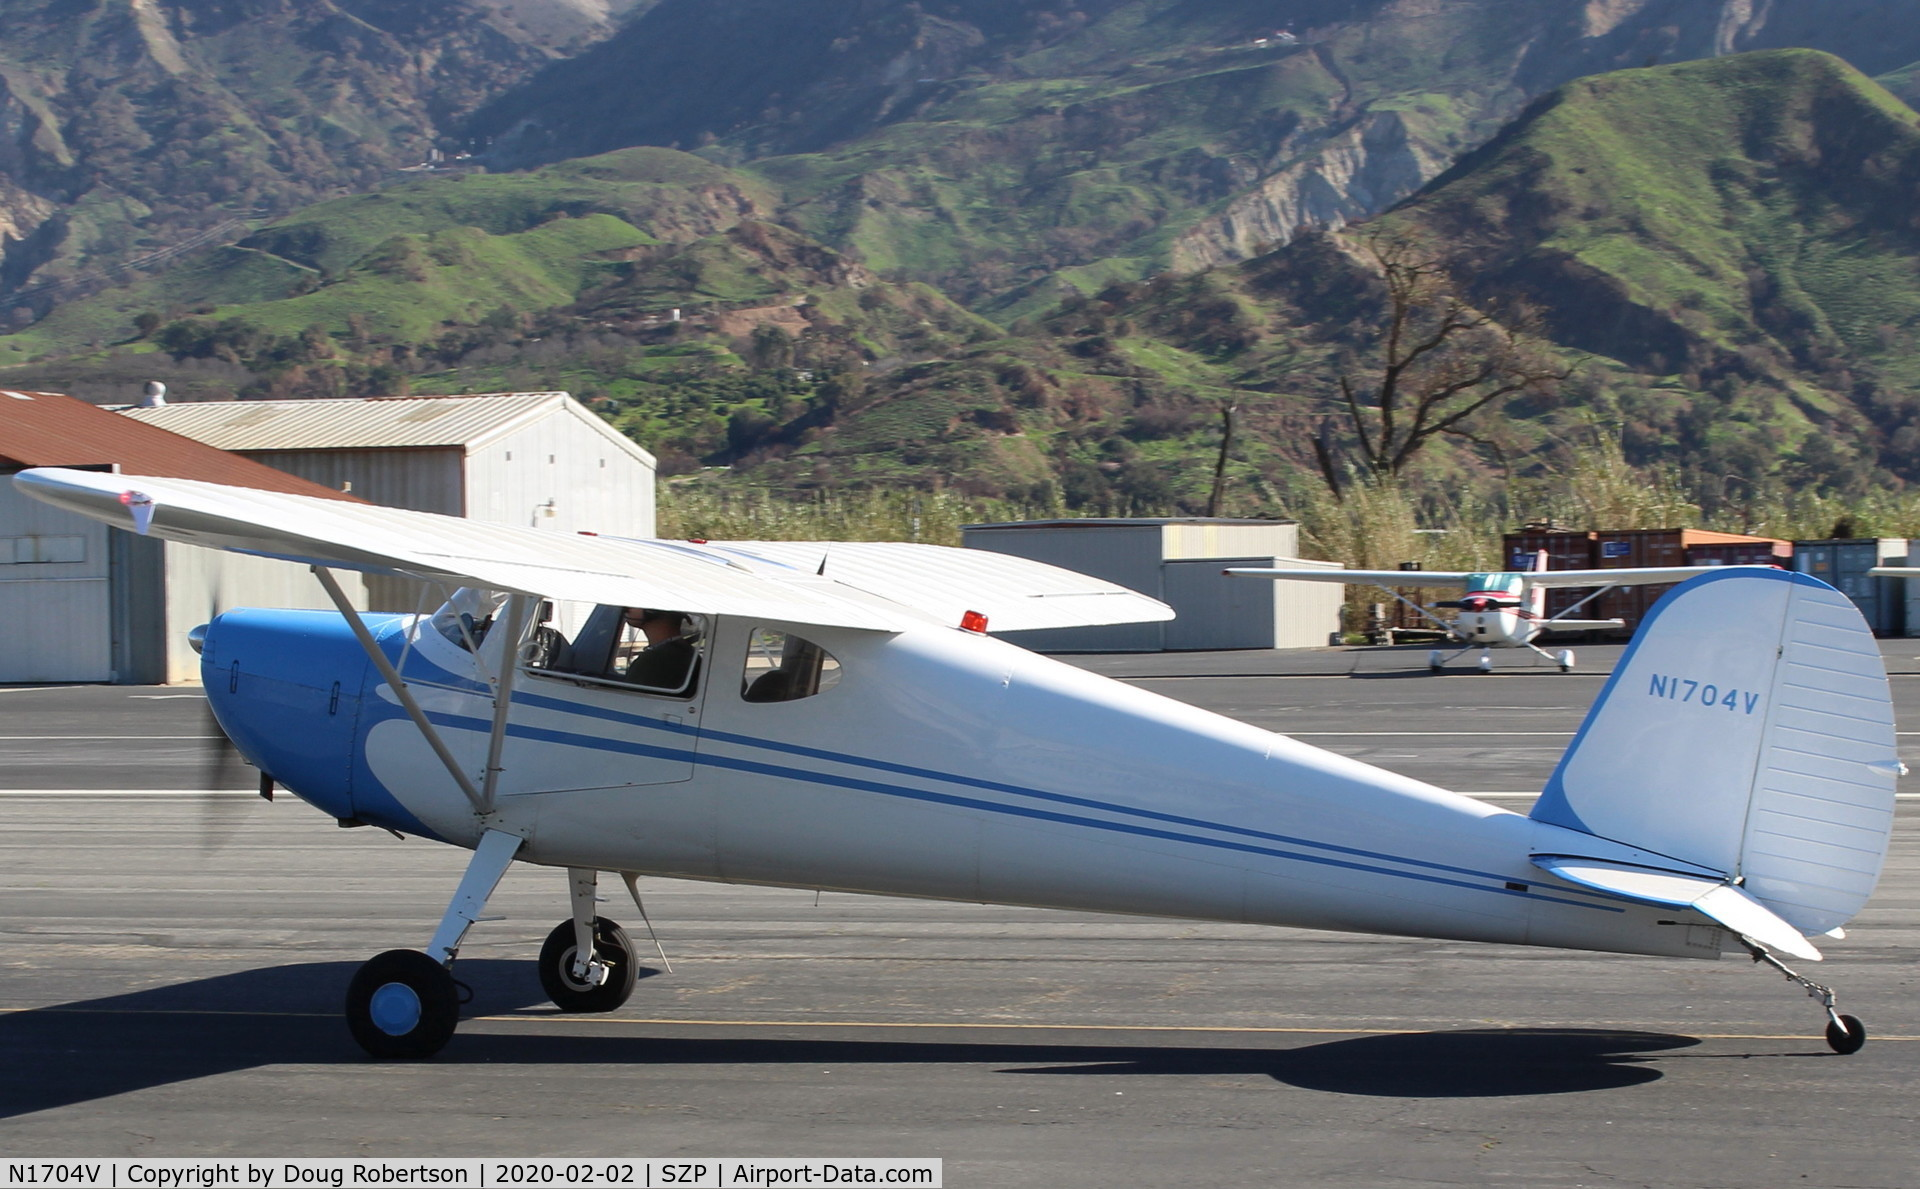 N1704V, Cessna 140 C/N 13889, 1948 Cessna 140, Continental C-85-12 85 Hp, taxi to Rwy 22